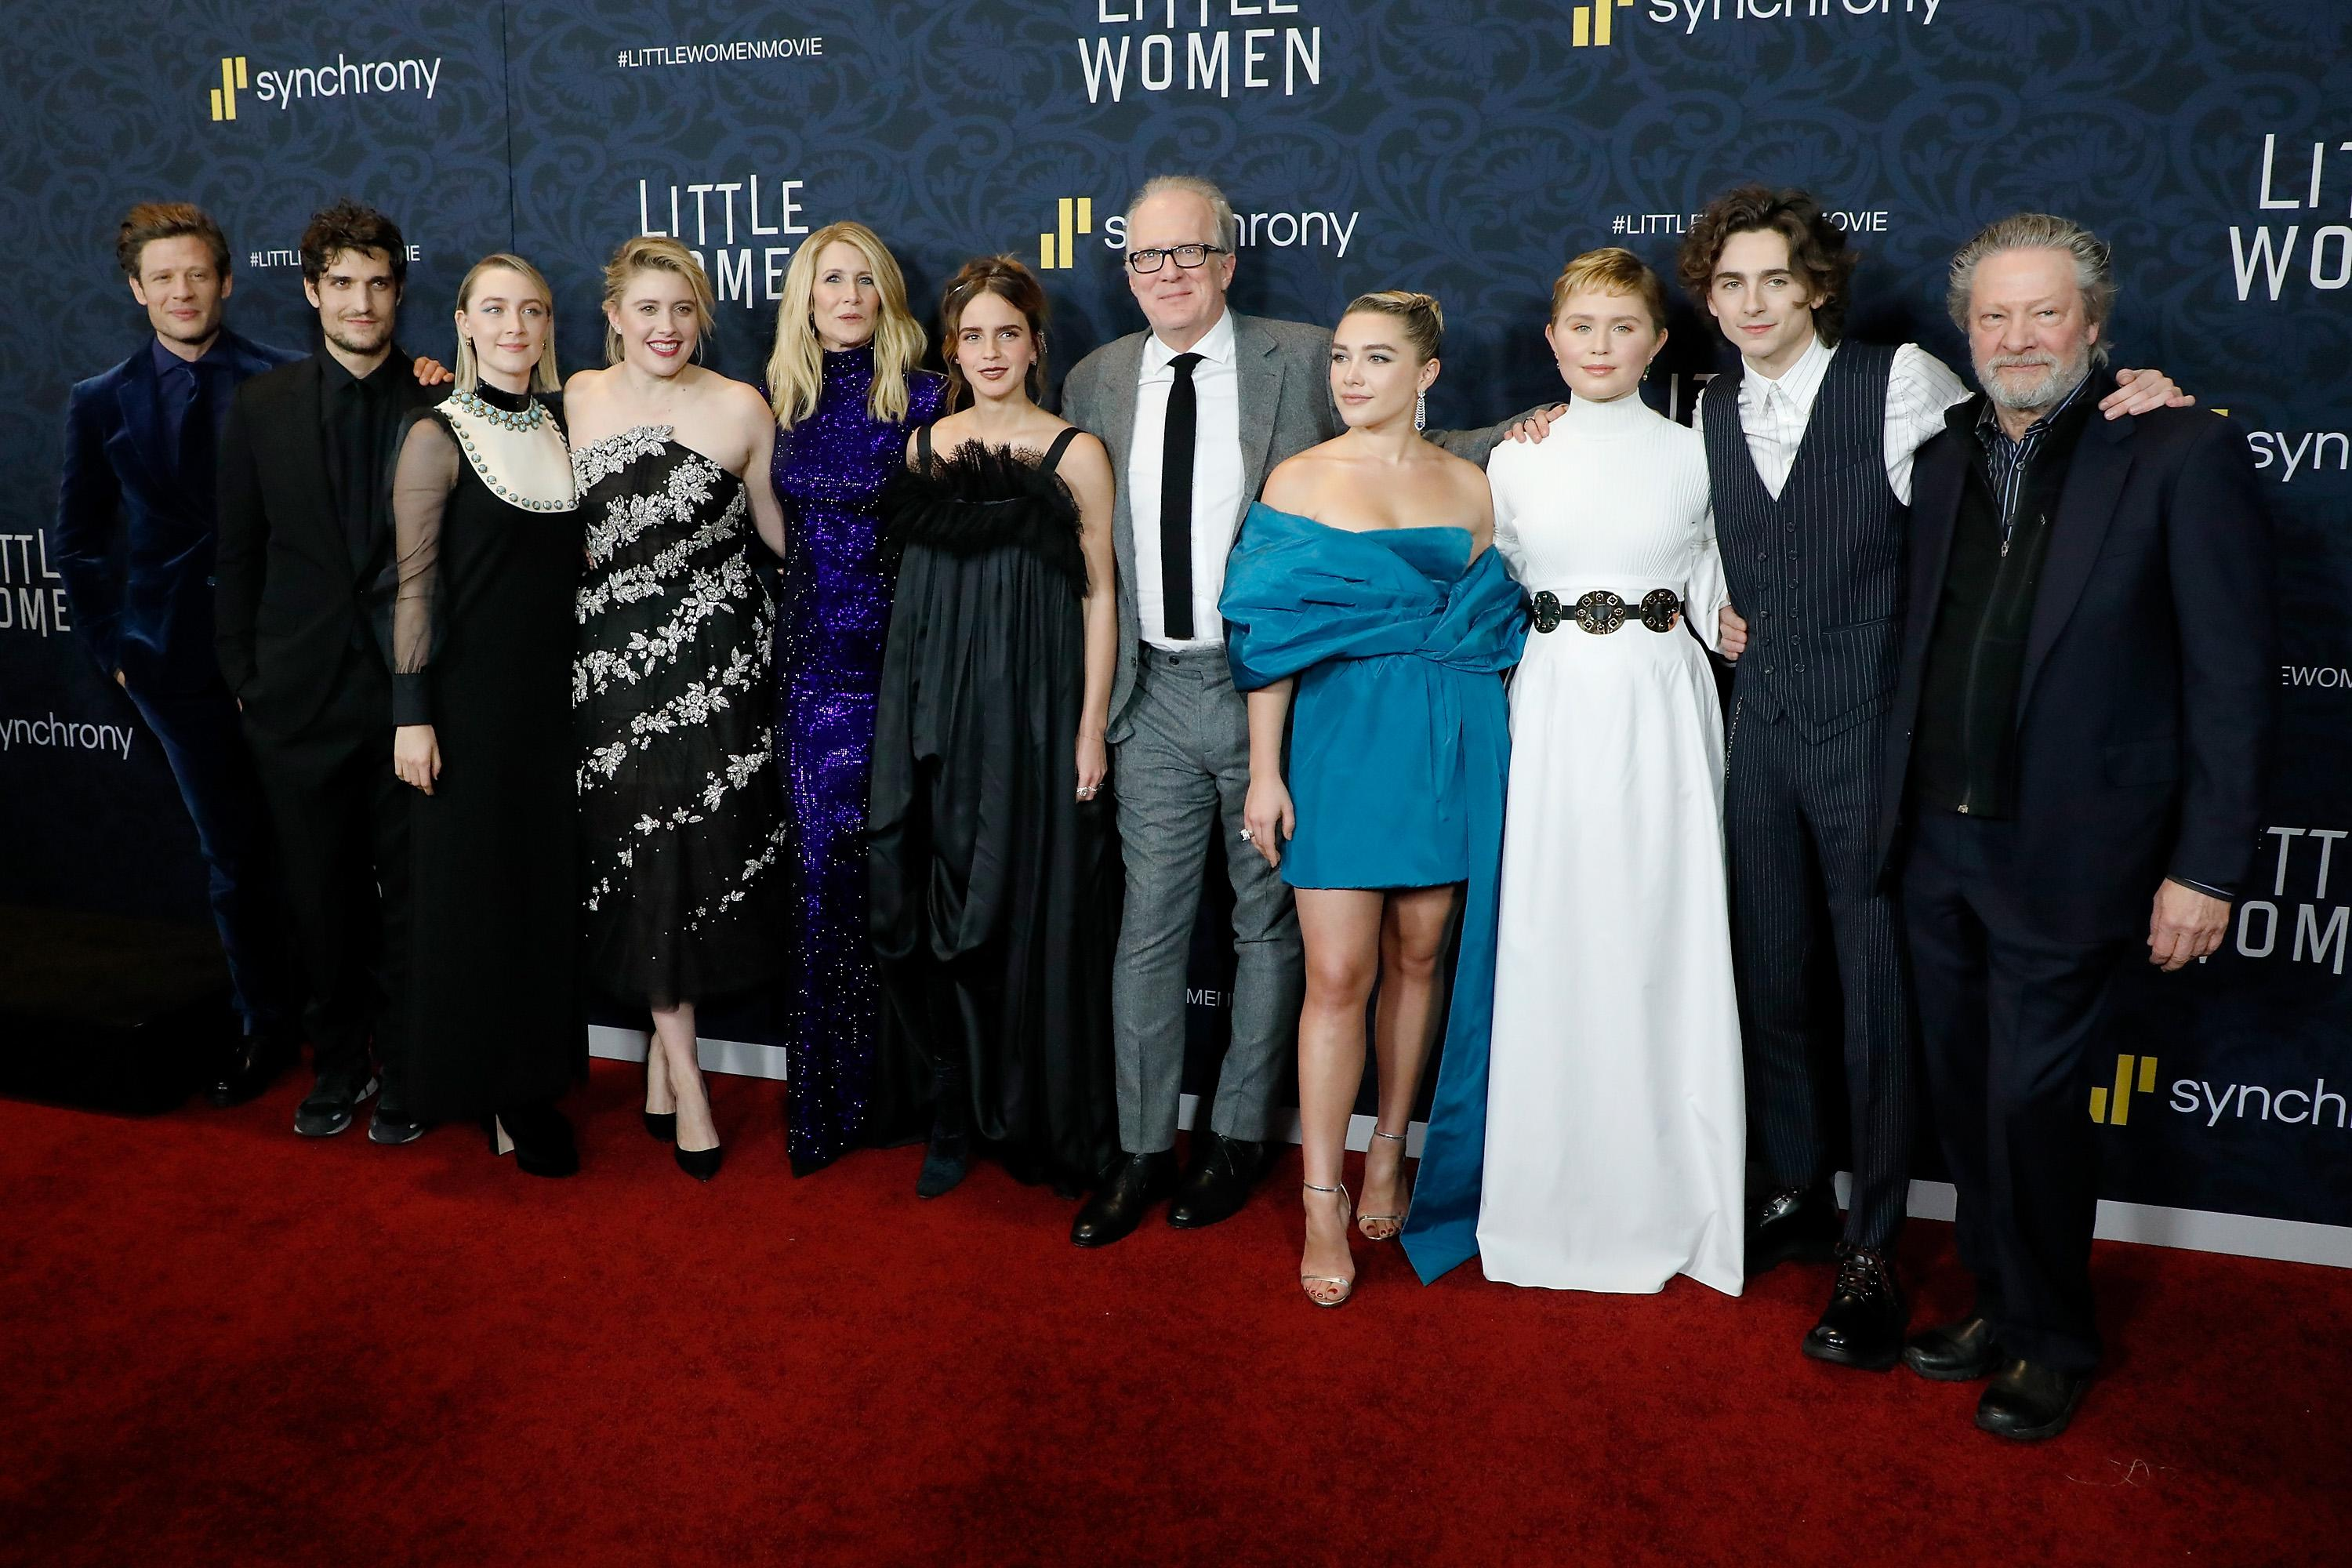 Left to right, James Norton, Louis Garrel, Saoirse Ronan, Greta Gerwig, Laura Dern, Emma Watson, Tracy Letts, Florence Pugh, Eliza Scanlen, Timothee Chalamet and Chris Cooper attend the world premiere of 'Little Women'. [Photo: Getty]